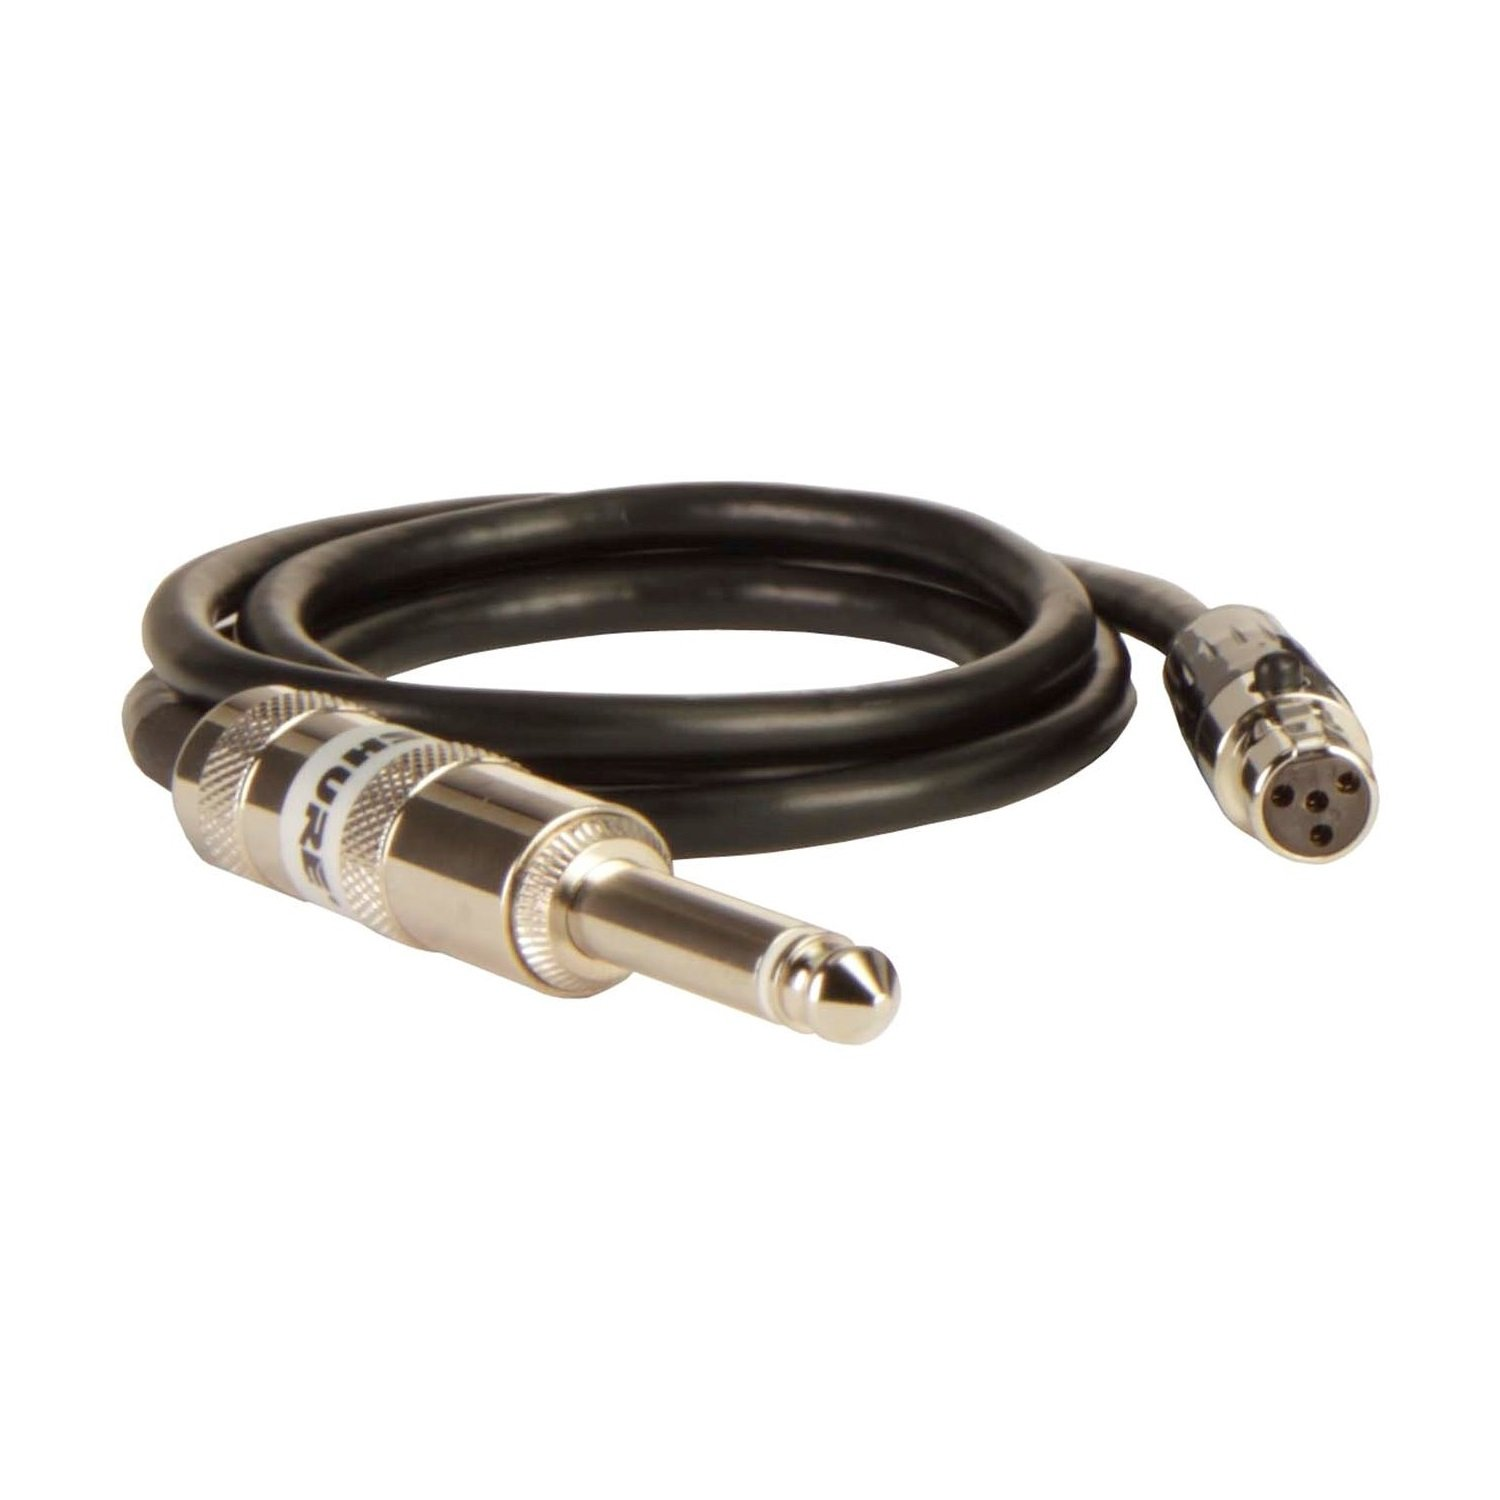 Shure WA302 2-Feet Instrument Cable, 4-Pin Mini Connector (TA4F) to 1/4-Inch Connector Shure Incorporated